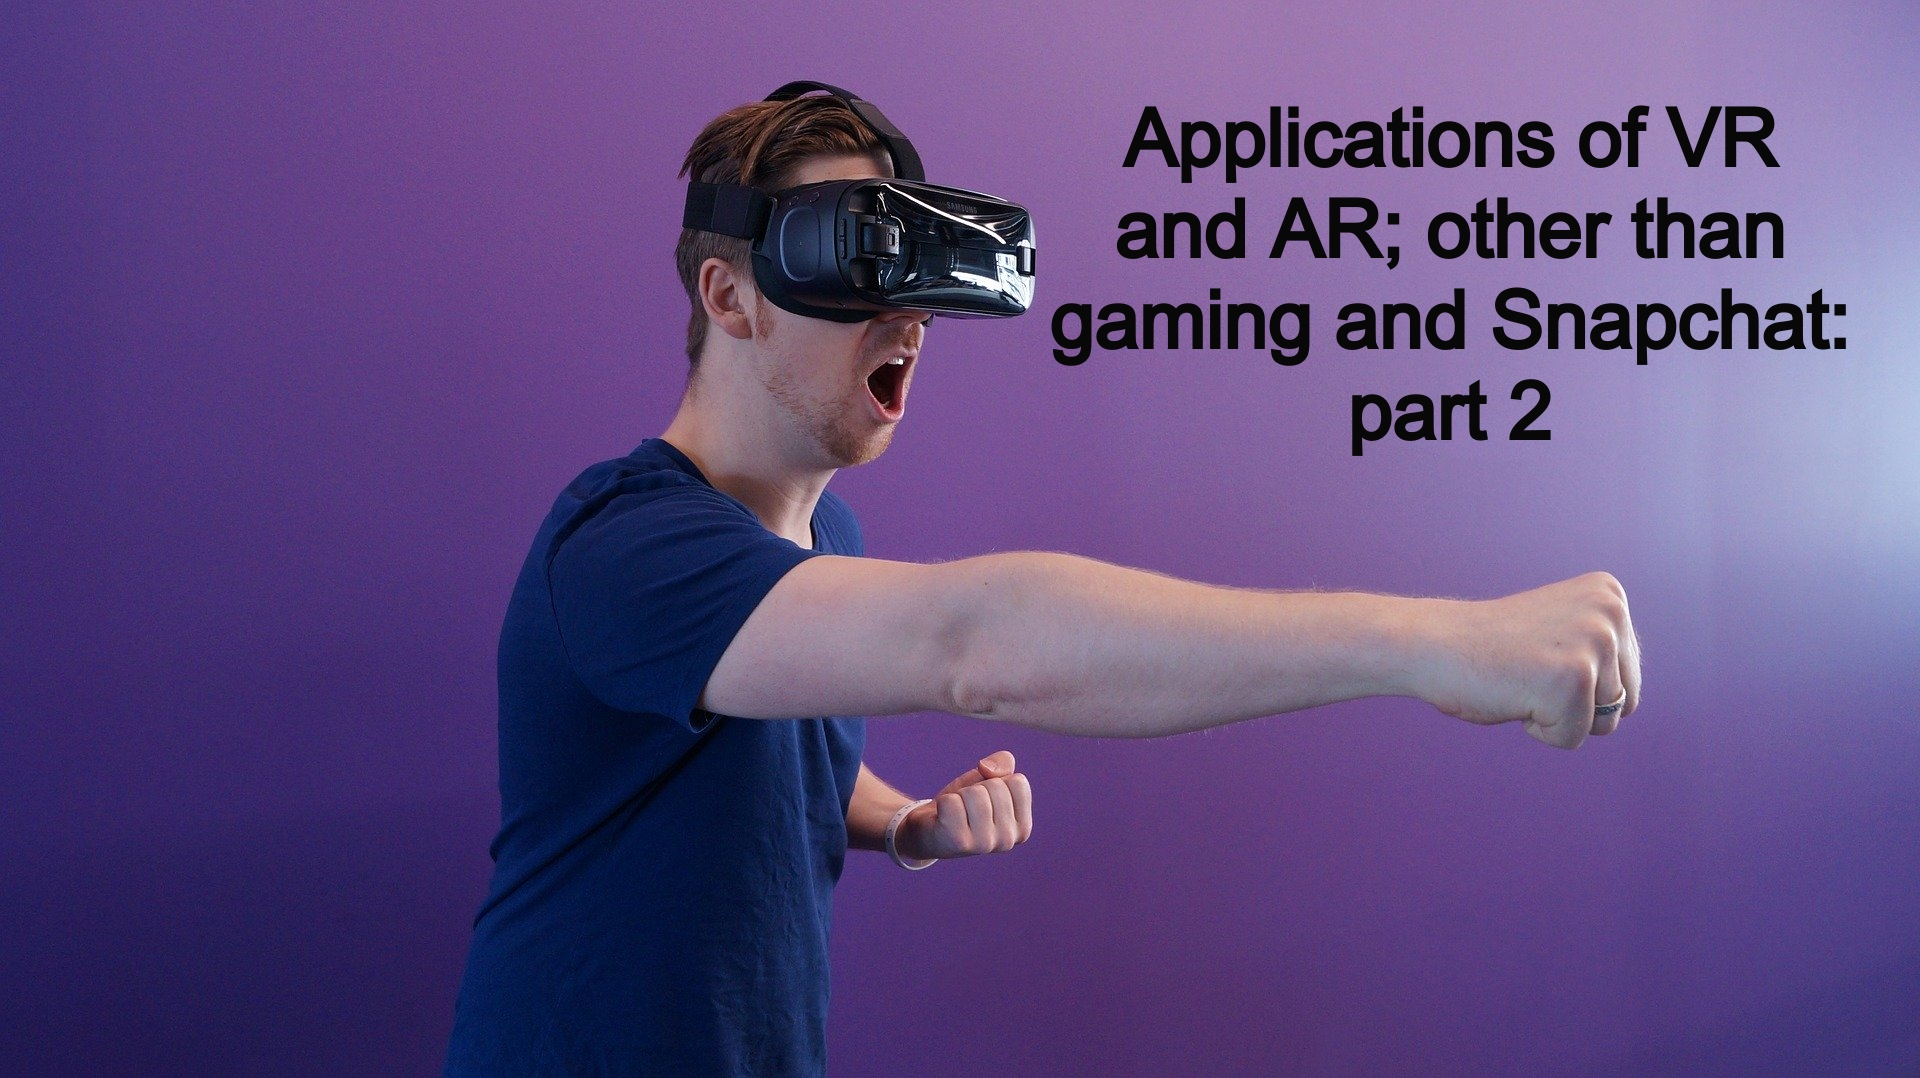 Applications of AR and VR; other than gaming and Snapchat: part 2